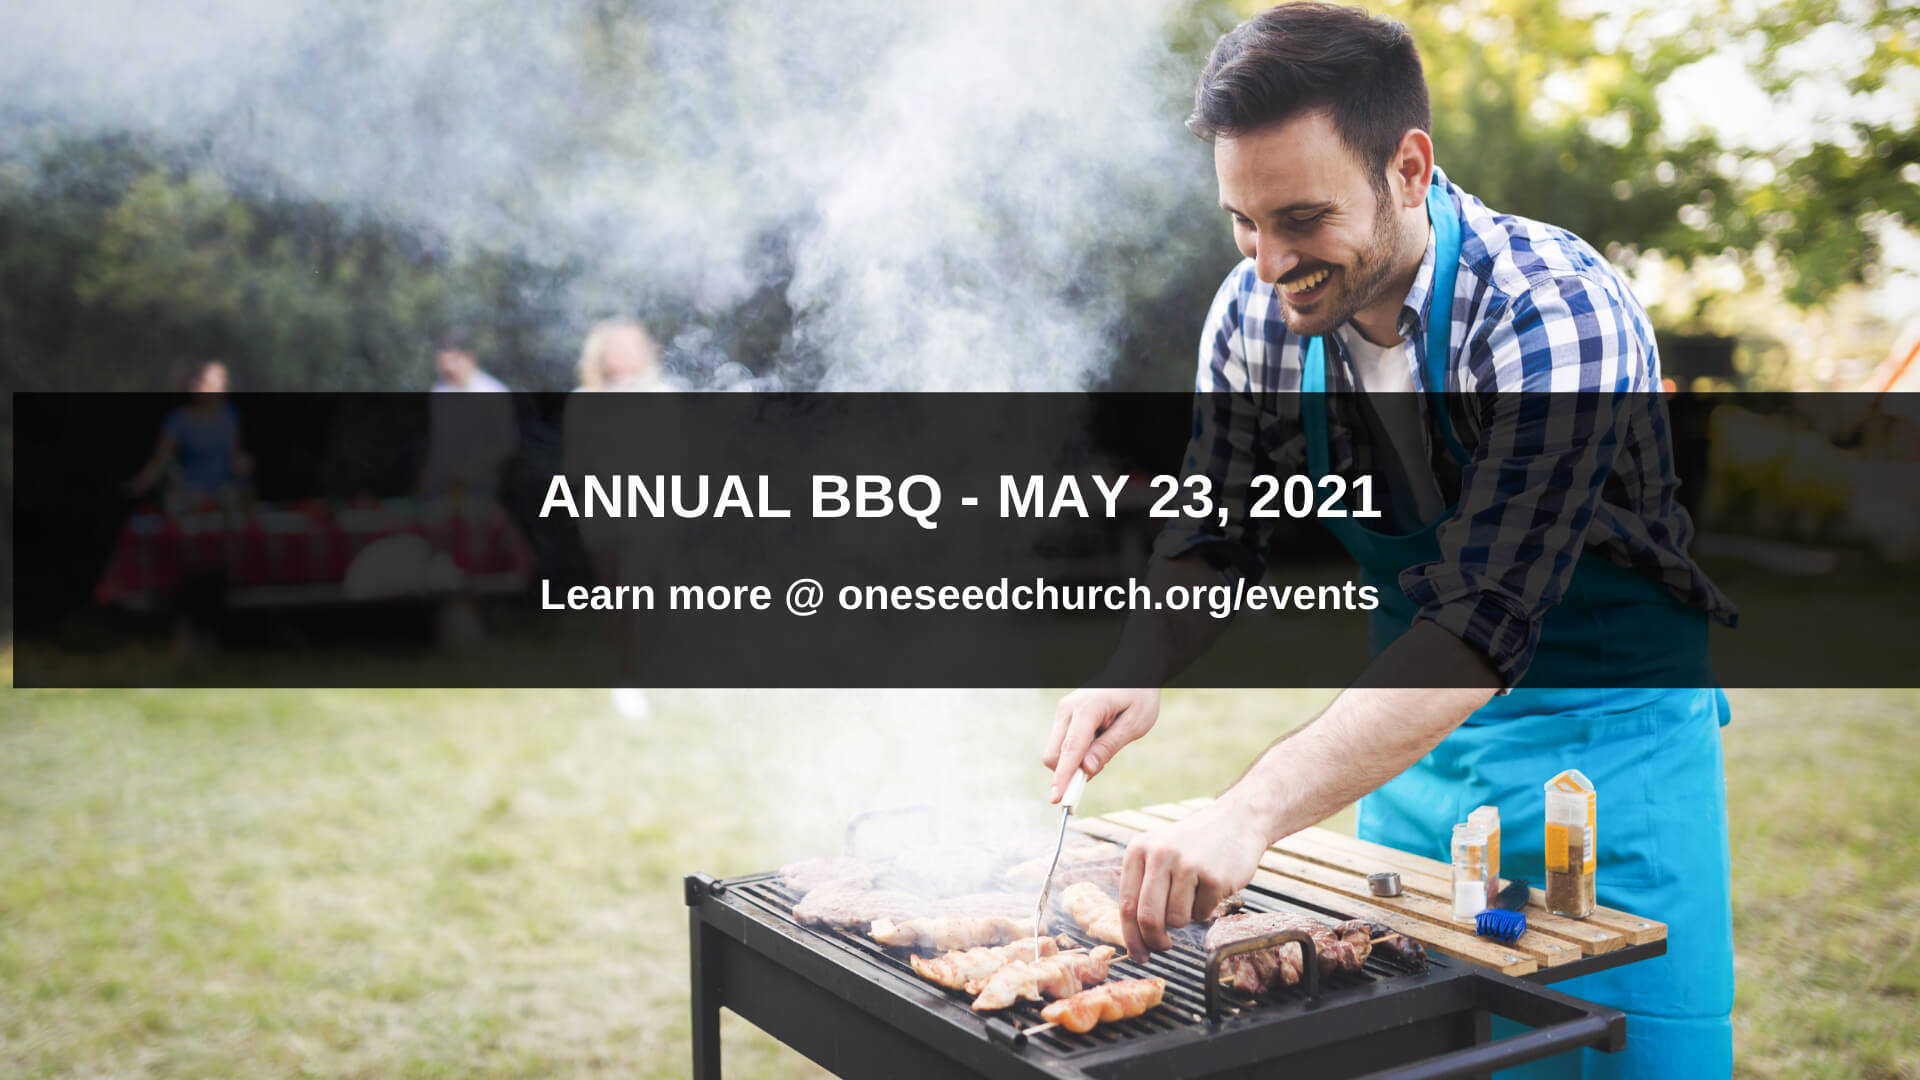 """<p>Join us May 23rd at Quail Ridge Park for food and fun!</p>  <p><strong>RSVP BELOW:</strong><br /> <a href=""""https://form.jotform.com/211044006513135"""" target=""""_blank"""">https://form.jotform.com/211044006513135</a></p>  <p><strong>Want to know what other&#39;s are bringing?&nbsp; Check out the food list here:</strong><br />  <a href=""""https://oneseedchurch.org/foodlist"""" target=""""_blank"""">https://oneseedchurch.org/foodlist</a></p>"""